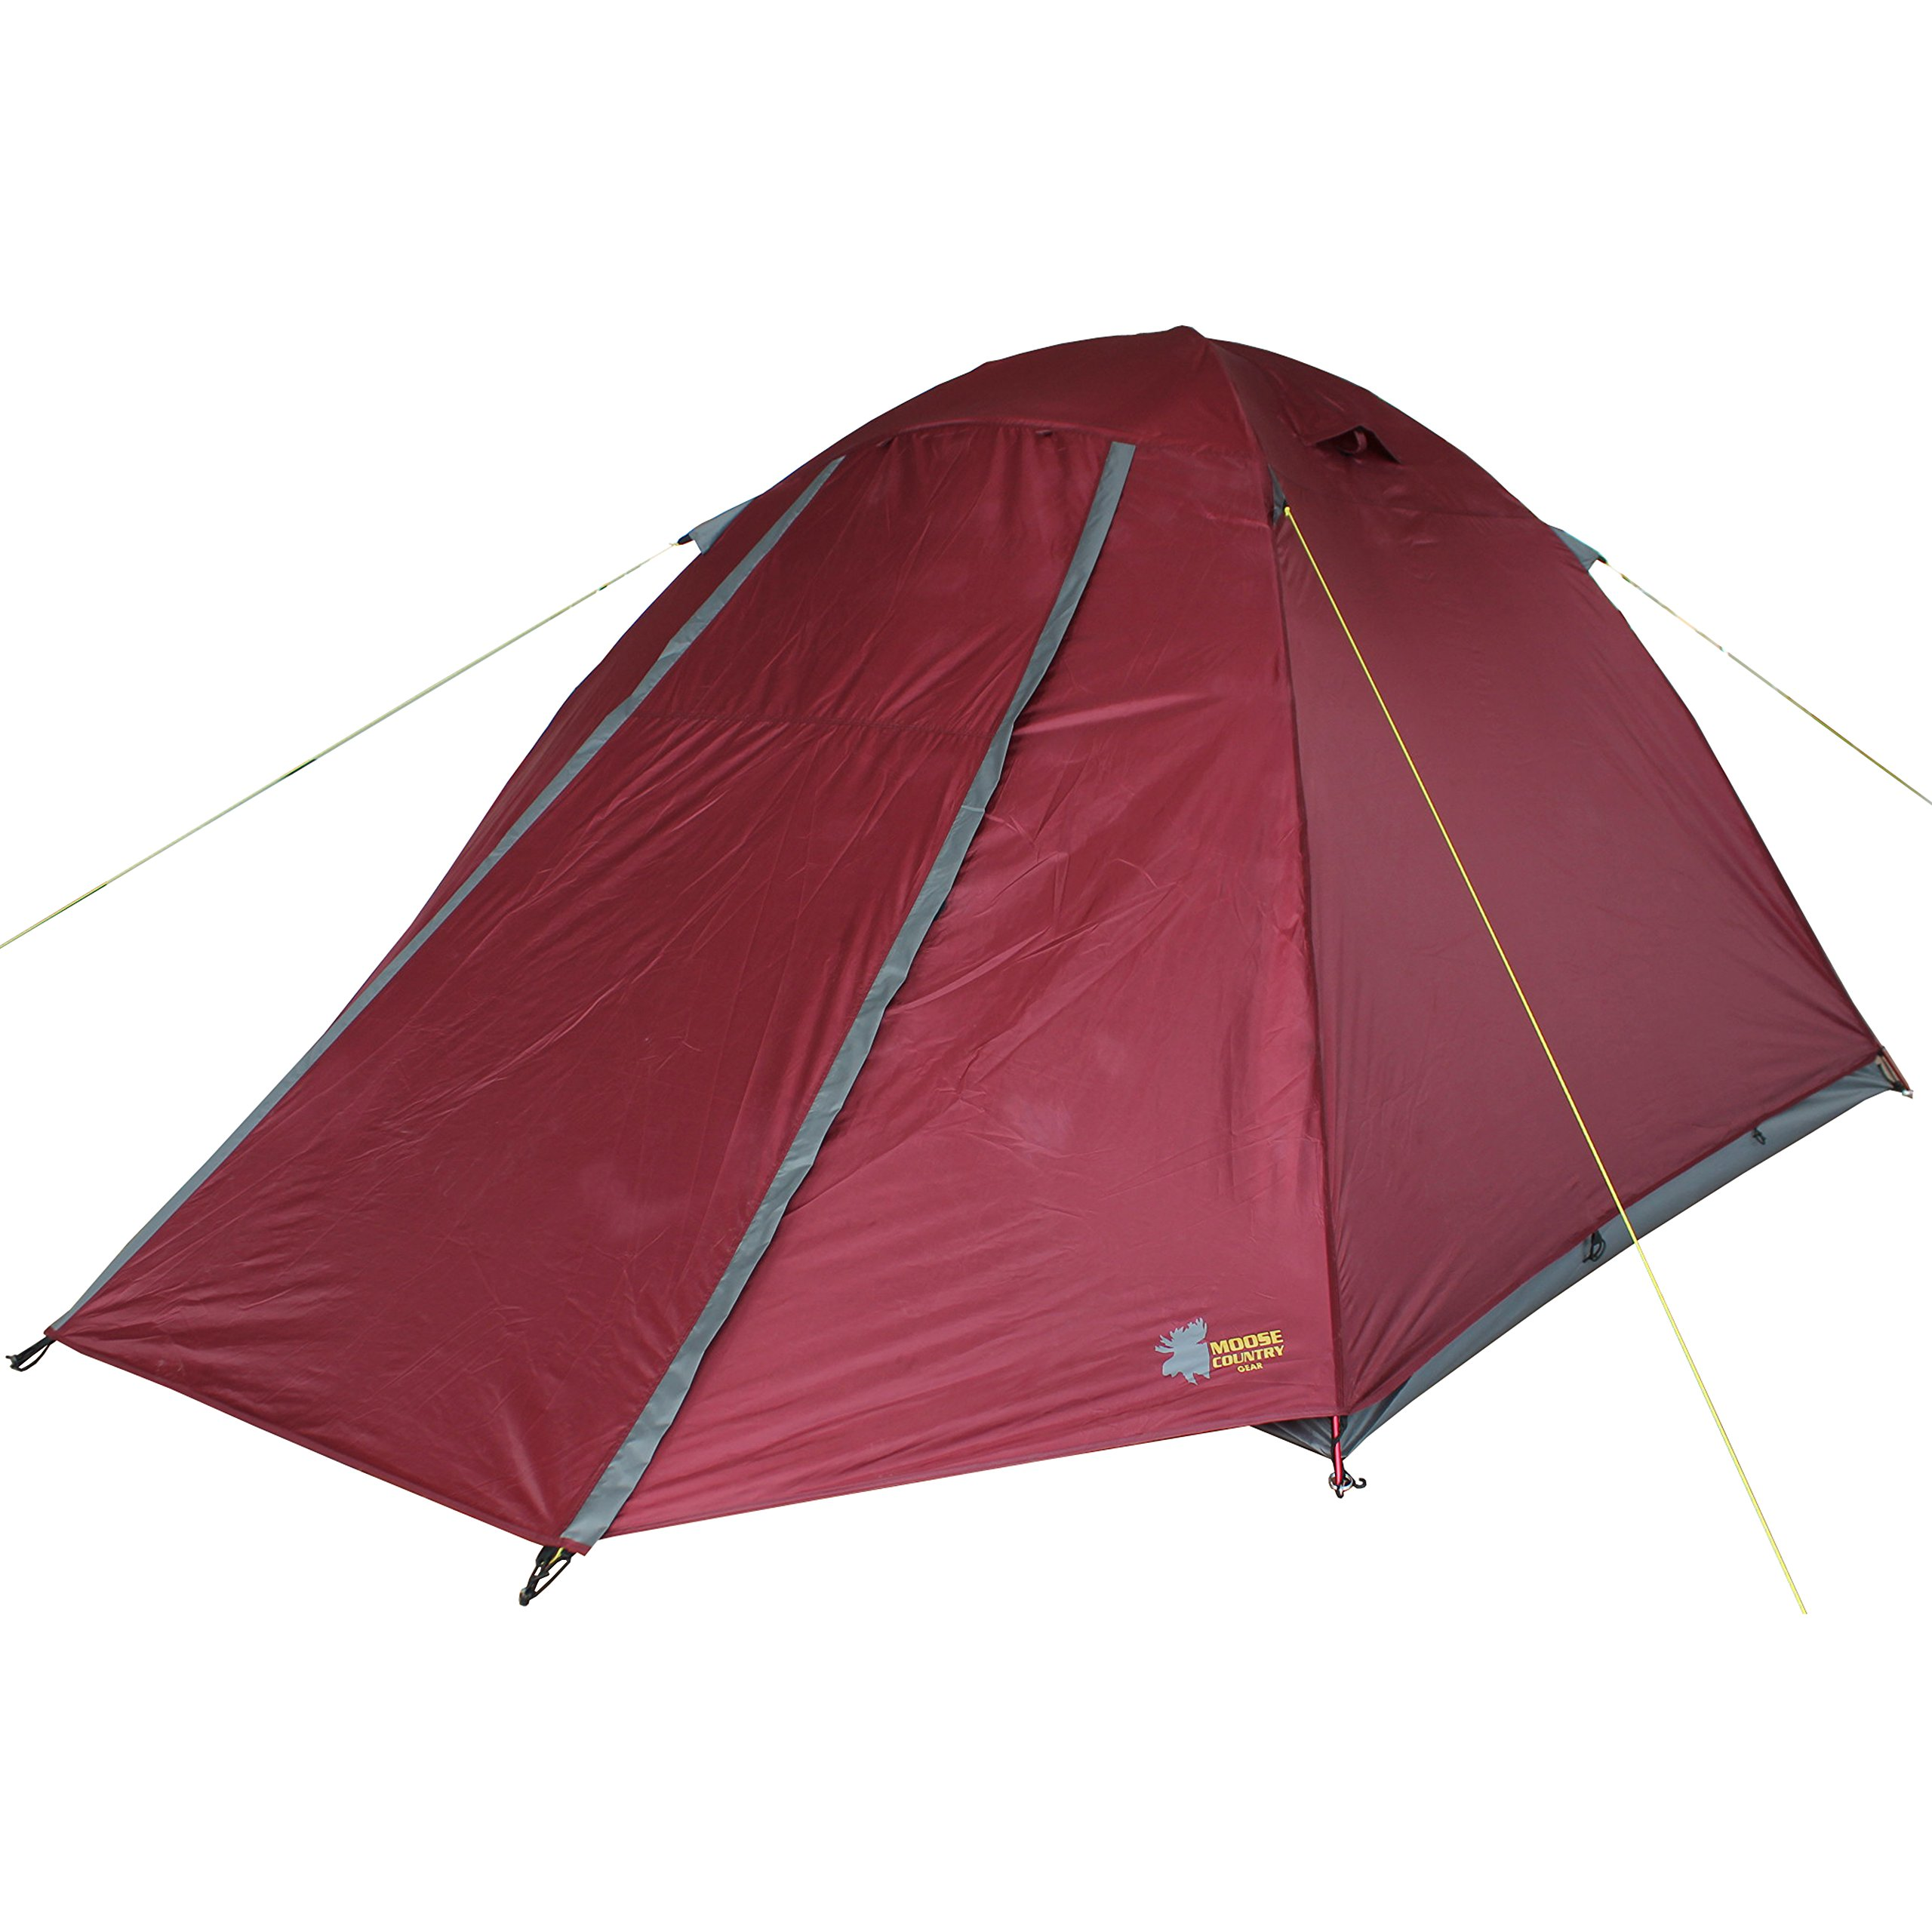 High Peak Outdoors BaseCamp 4 Person 4-Season Expedition-Quality Backpacking Tent by High Peak Outdoors (Image #3)